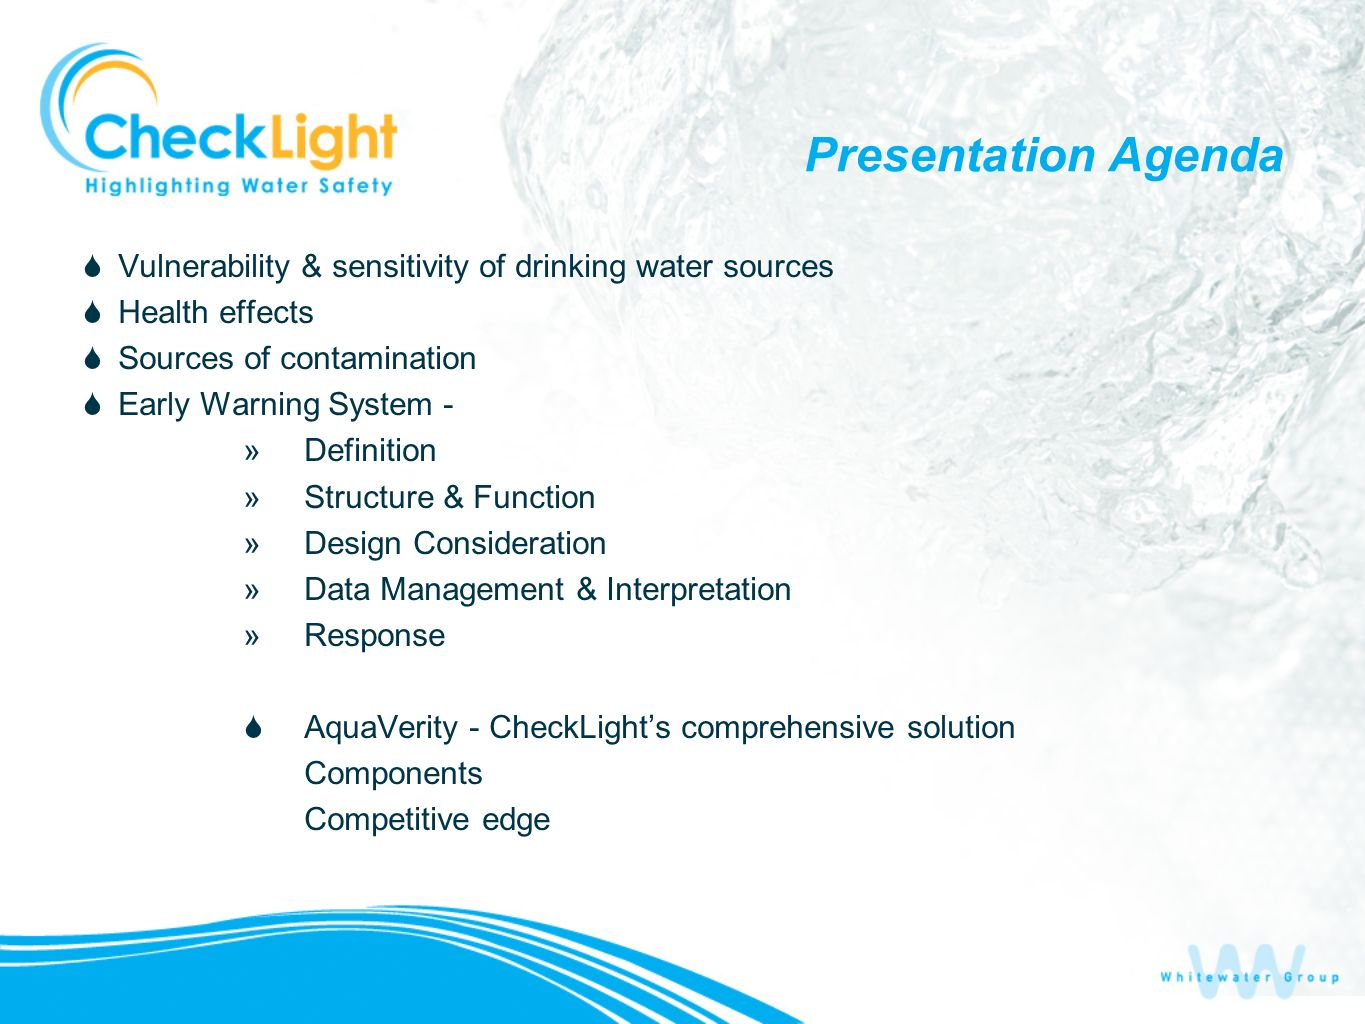 Vulnerability and Sensitivity of Drinking Water Sources Surface water Runoff Ground water infiltration Ground water Infiltration from the surface Injection of contaminants Naturally occurring substances